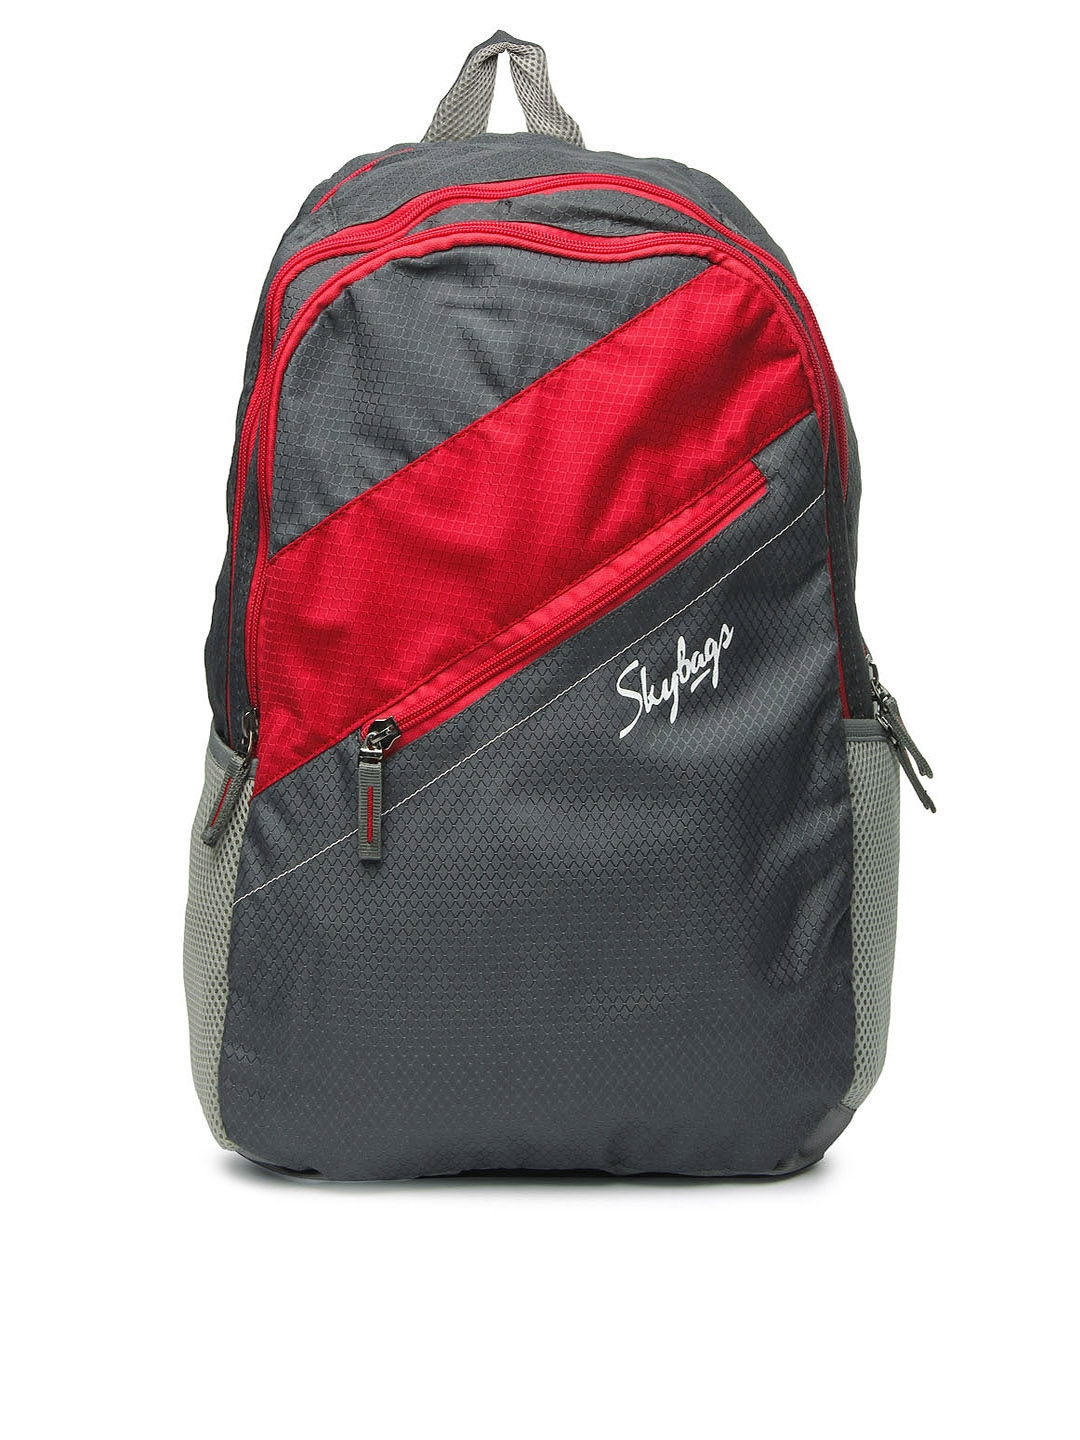 Skybags Unisex Grey Backpack